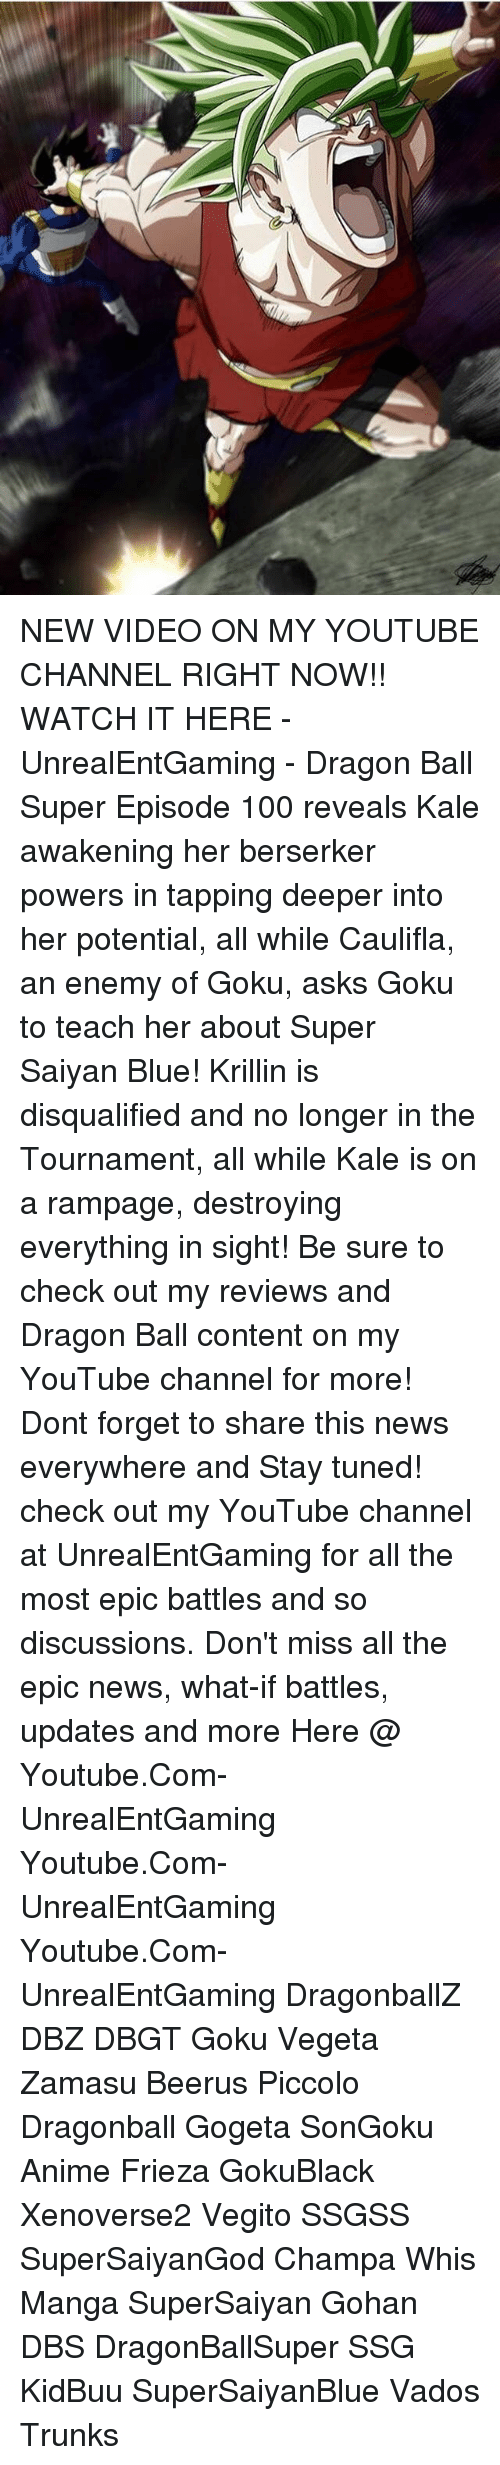 Zamasu: NEW VIDEO ON MY YOUTUBE CHANNEL RIGHT NOW!! WATCH IT HERE - UnrealEntGaming - Dragon Ball Super Episode 100 reveals Kale awakening her berserker powers in tapping deeper into her potential, all while Caulifla, an enemy of Goku, asks Goku to teach her about Super Saiyan Blue! Krillin is disqualified and no longer in the Tournament, all while Kale is on a rampage, destroying everything in sight! Be sure to check out my reviews and Dragon Ball content on my YouTube channel for more! Dont forget to share this news everywhere and Stay tuned! check out my YouTube channel at UnrealEntGaming for all the most epic battles and so discussions. Don't miss all the epic news, what-if battles, updates and more Here @ Youtube.Com-UnrealEntGaming Youtube.Com-UnrealEntGaming Youtube.Com-UnrealEntGaming DragonballZ DBZ DBGT Goku Vegeta Zamasu Beerus Piccolo Dragonball Gogeta SonGoku Anime Frieza GokuBlack Xenoverse2 Vegito SSGSS SuperSaiyanGod Champa Whis Manga SuperSaiyan Gohan DBS DragonBallSuper SSG KidBuu SuperSaiyanBlue Vados Trunks